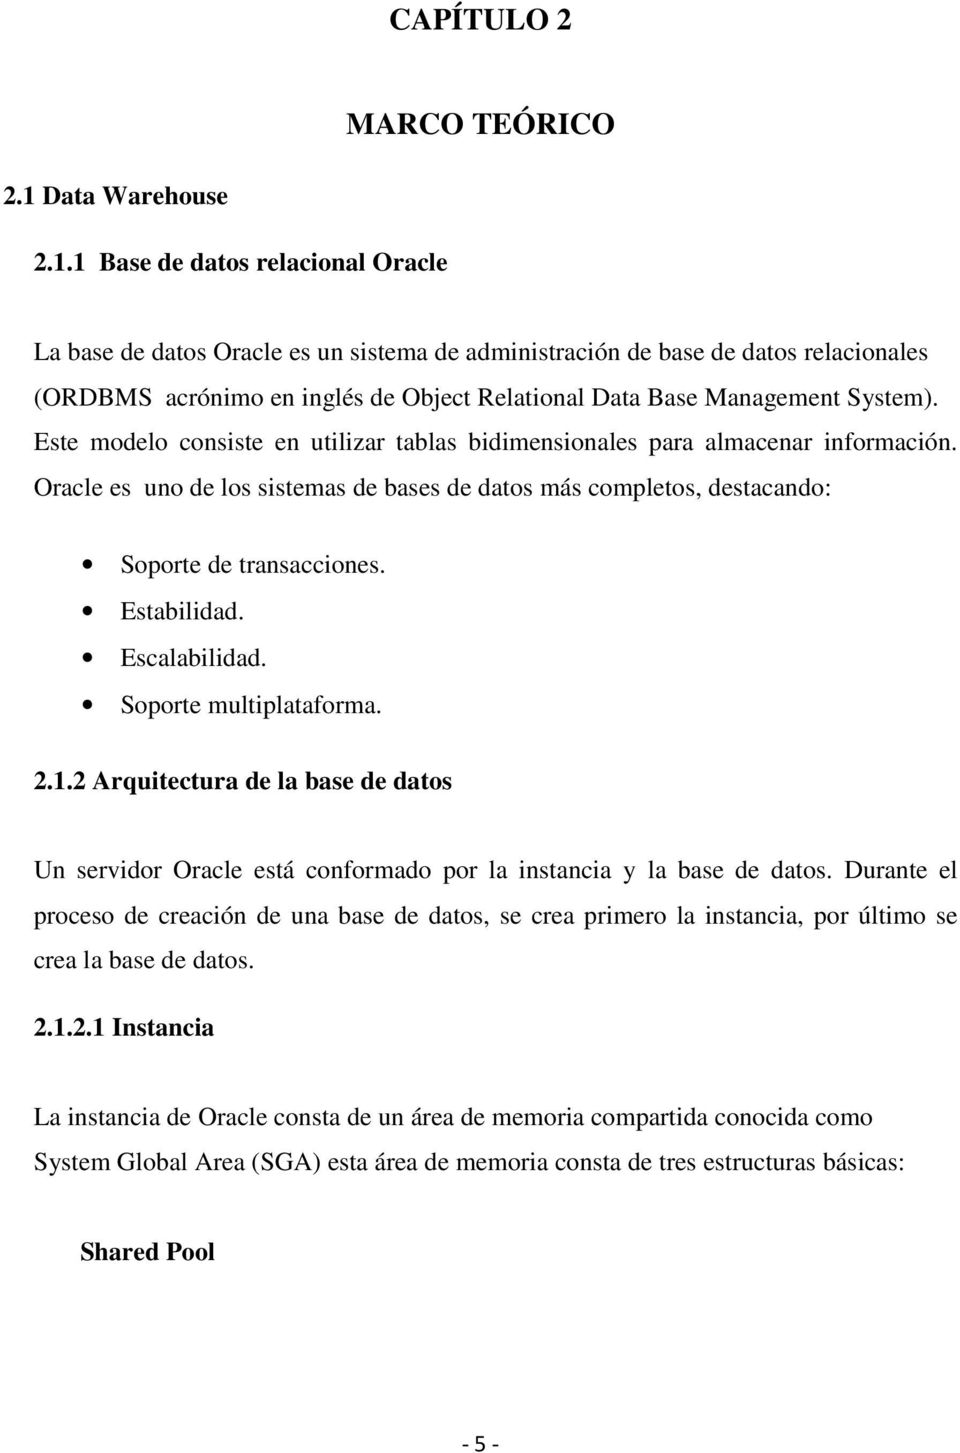 1 Base de datos relacional Oracle La base de datos Oracle es un sistema de administración de base de datos relacionales (ORDBMS acrónimo en inglés de Object Relational Data Base Management System).